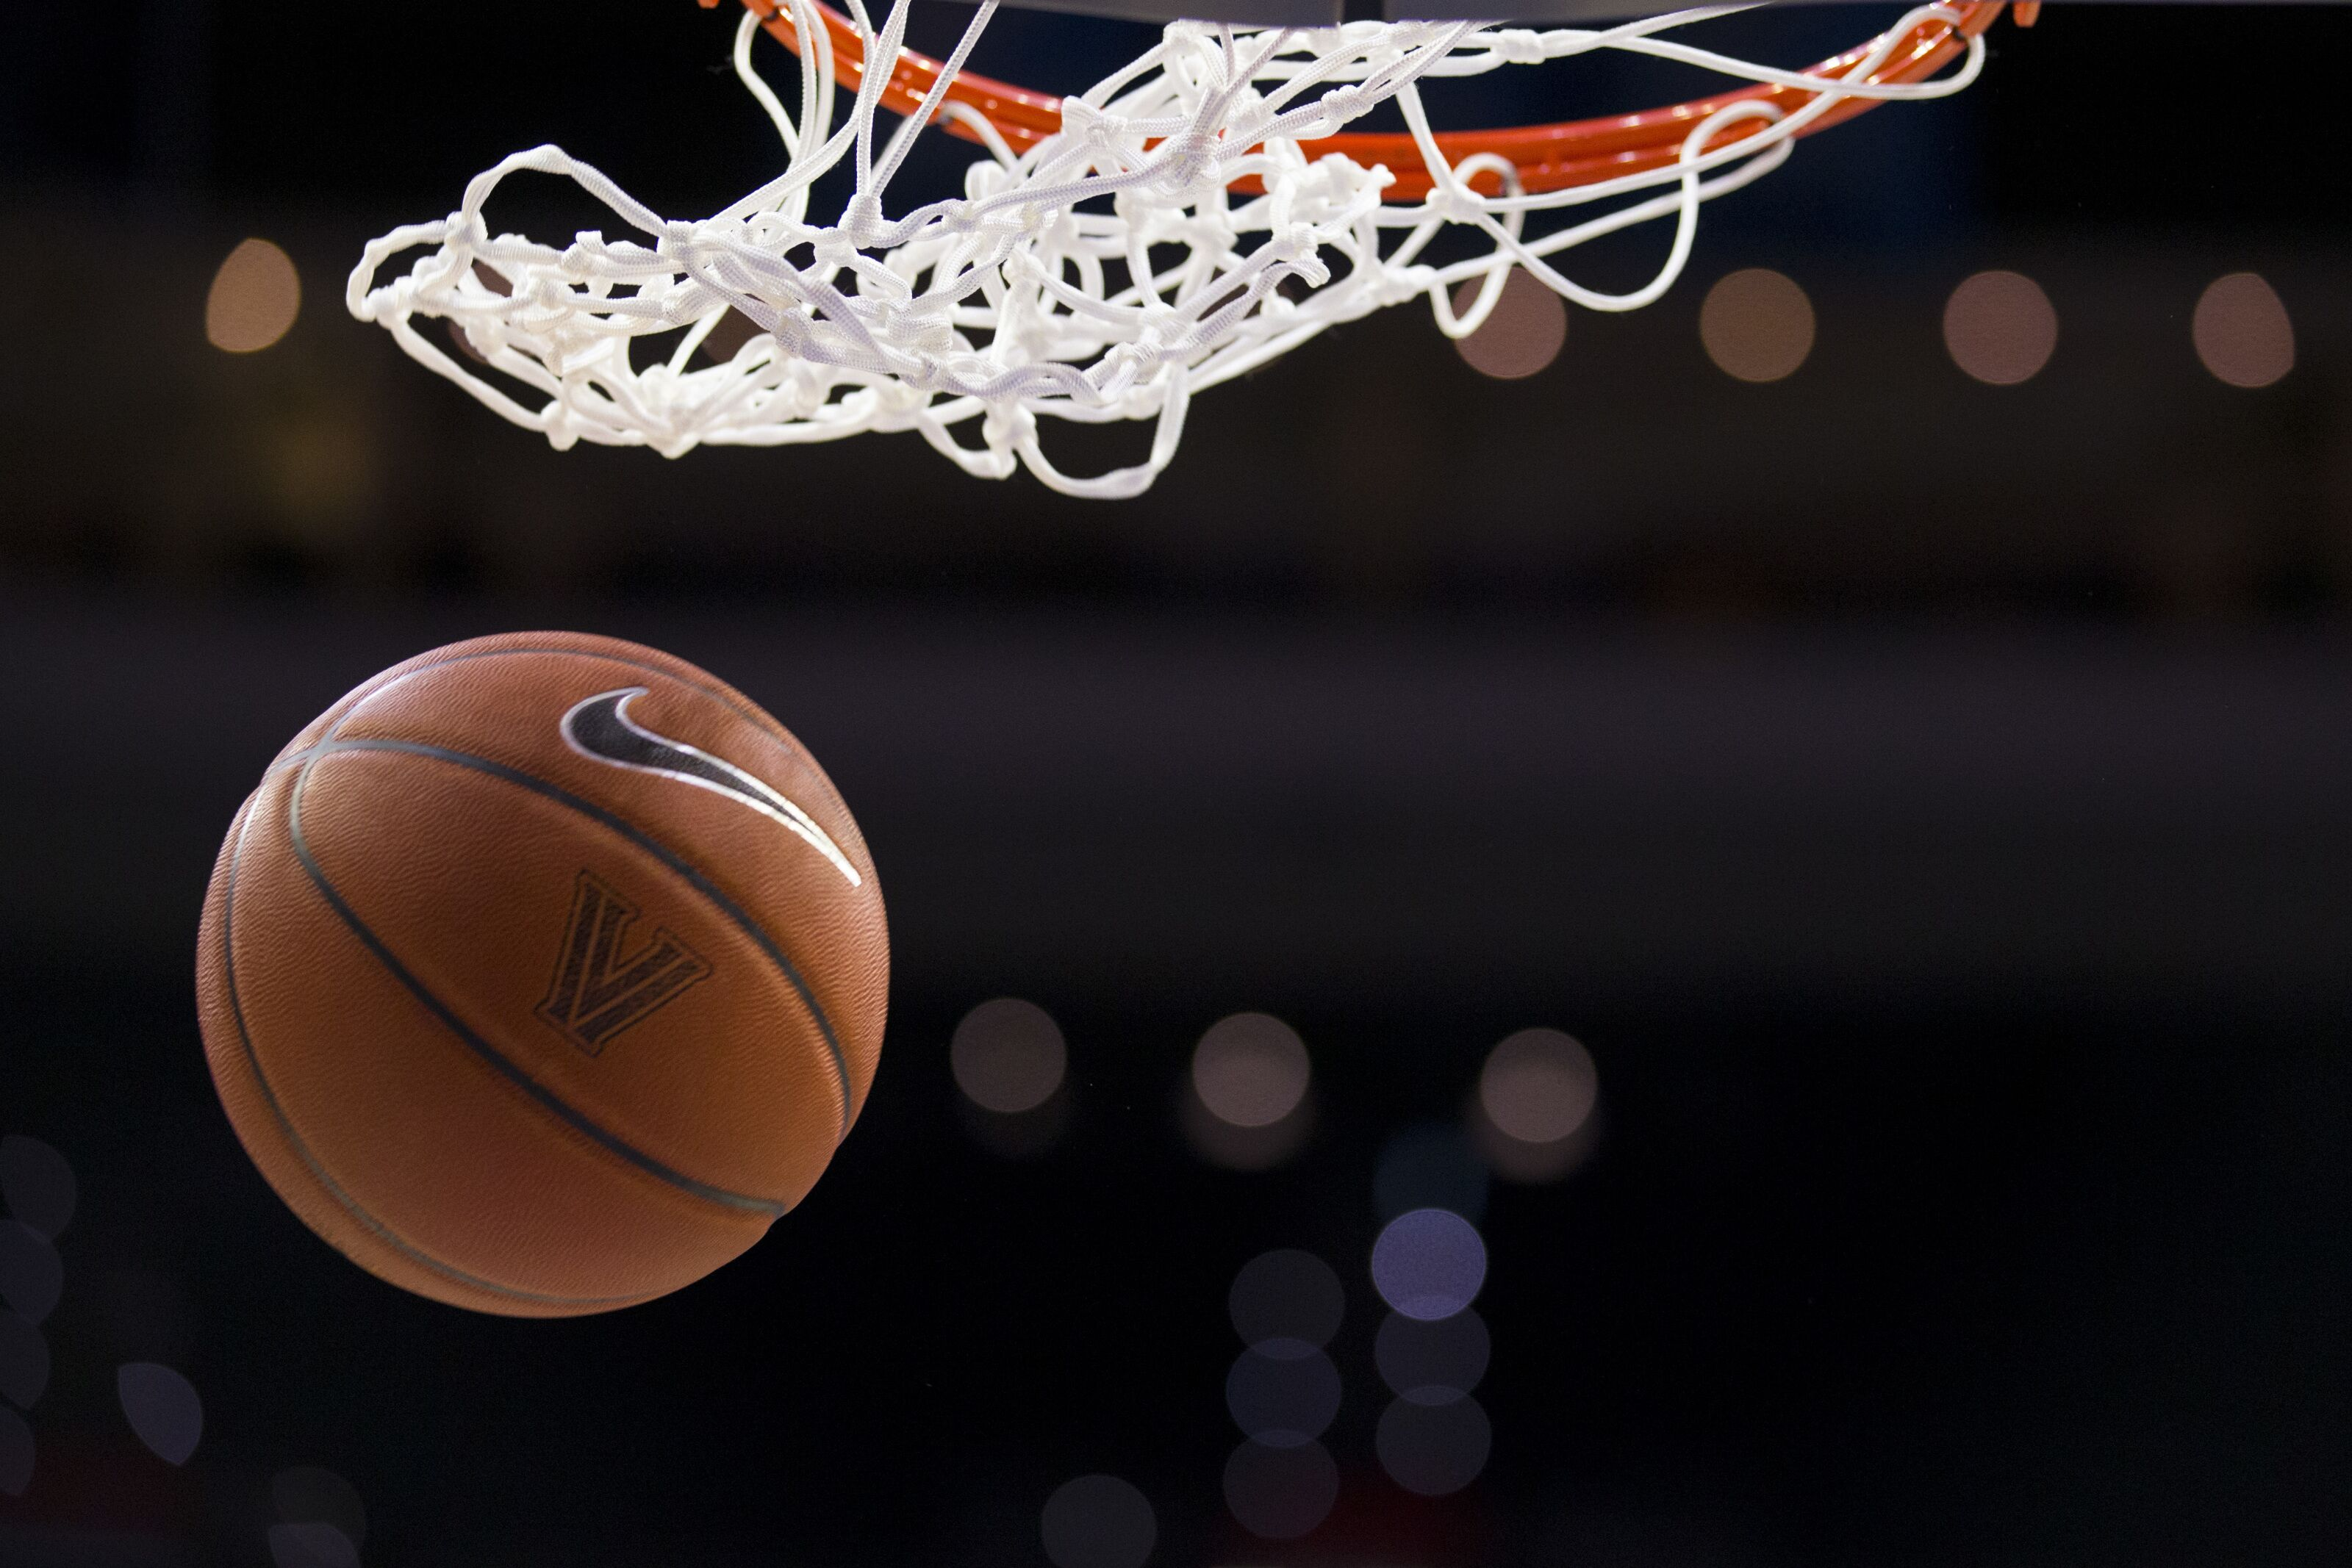 March Madness: Play Realtime Brackets to stay in the game